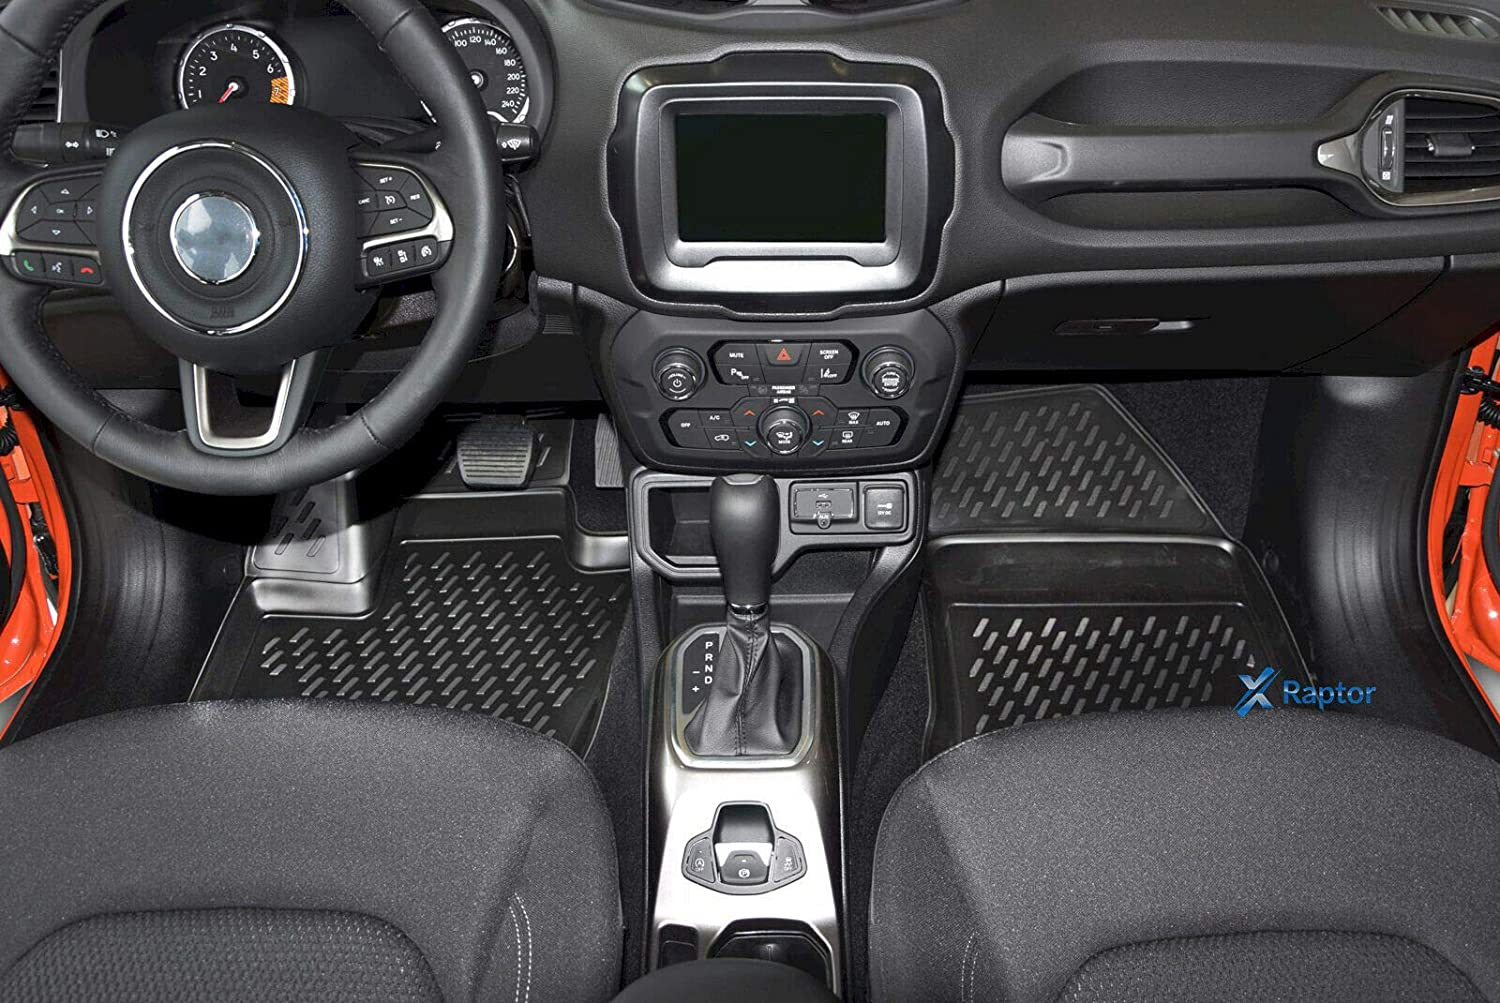 Kofferraumwanne Jeep Renegade ab 2015 J/&J AUTOMOTIVE Exklusiv 3D TPE 5-TLG Set Gummimatten